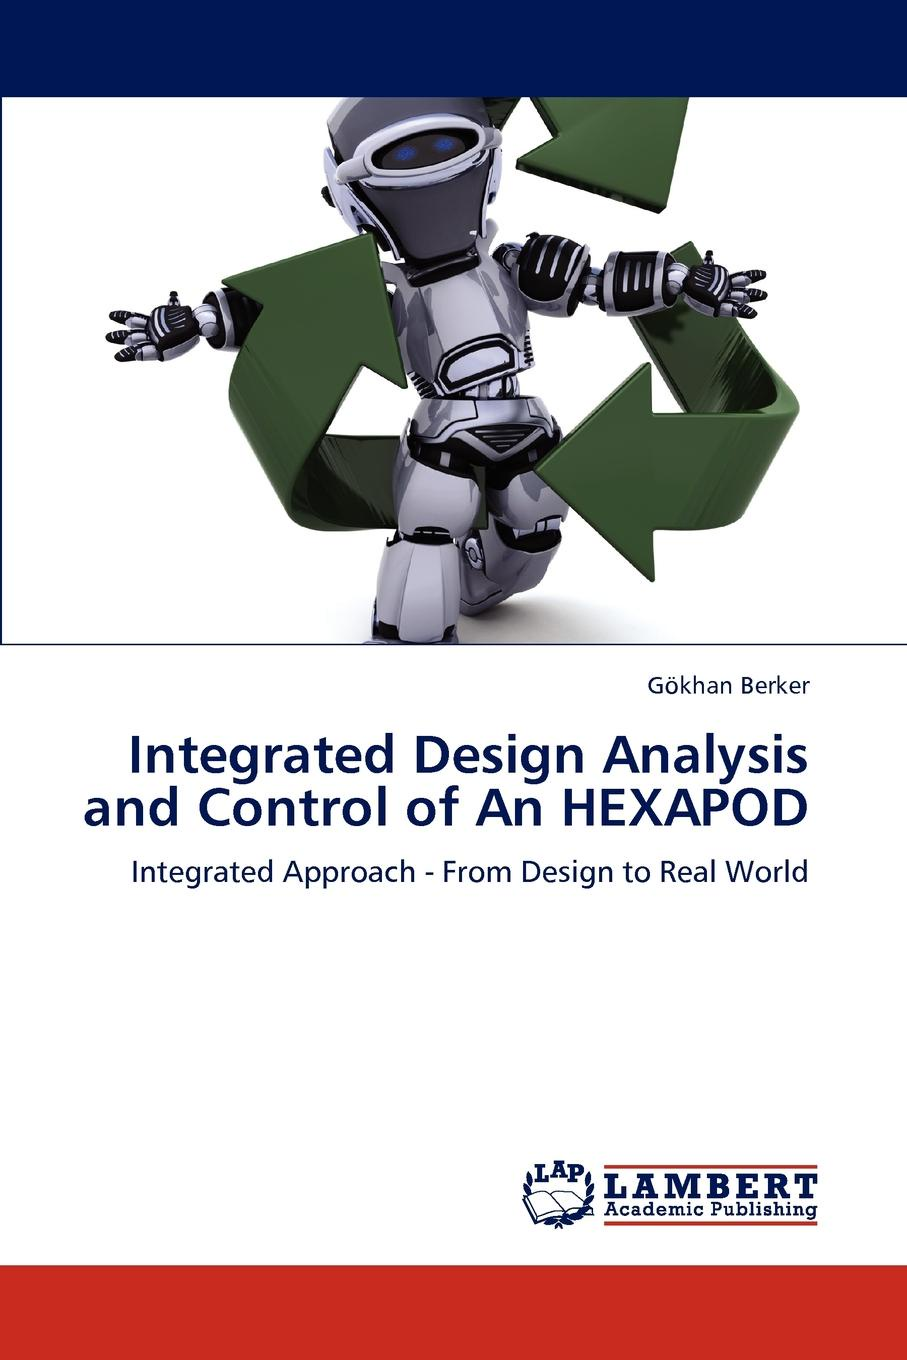 G. Khan Berker, Gokhan Berker Integrated Design Analysis and Control of an Hexapod недорго, оригинальная цена